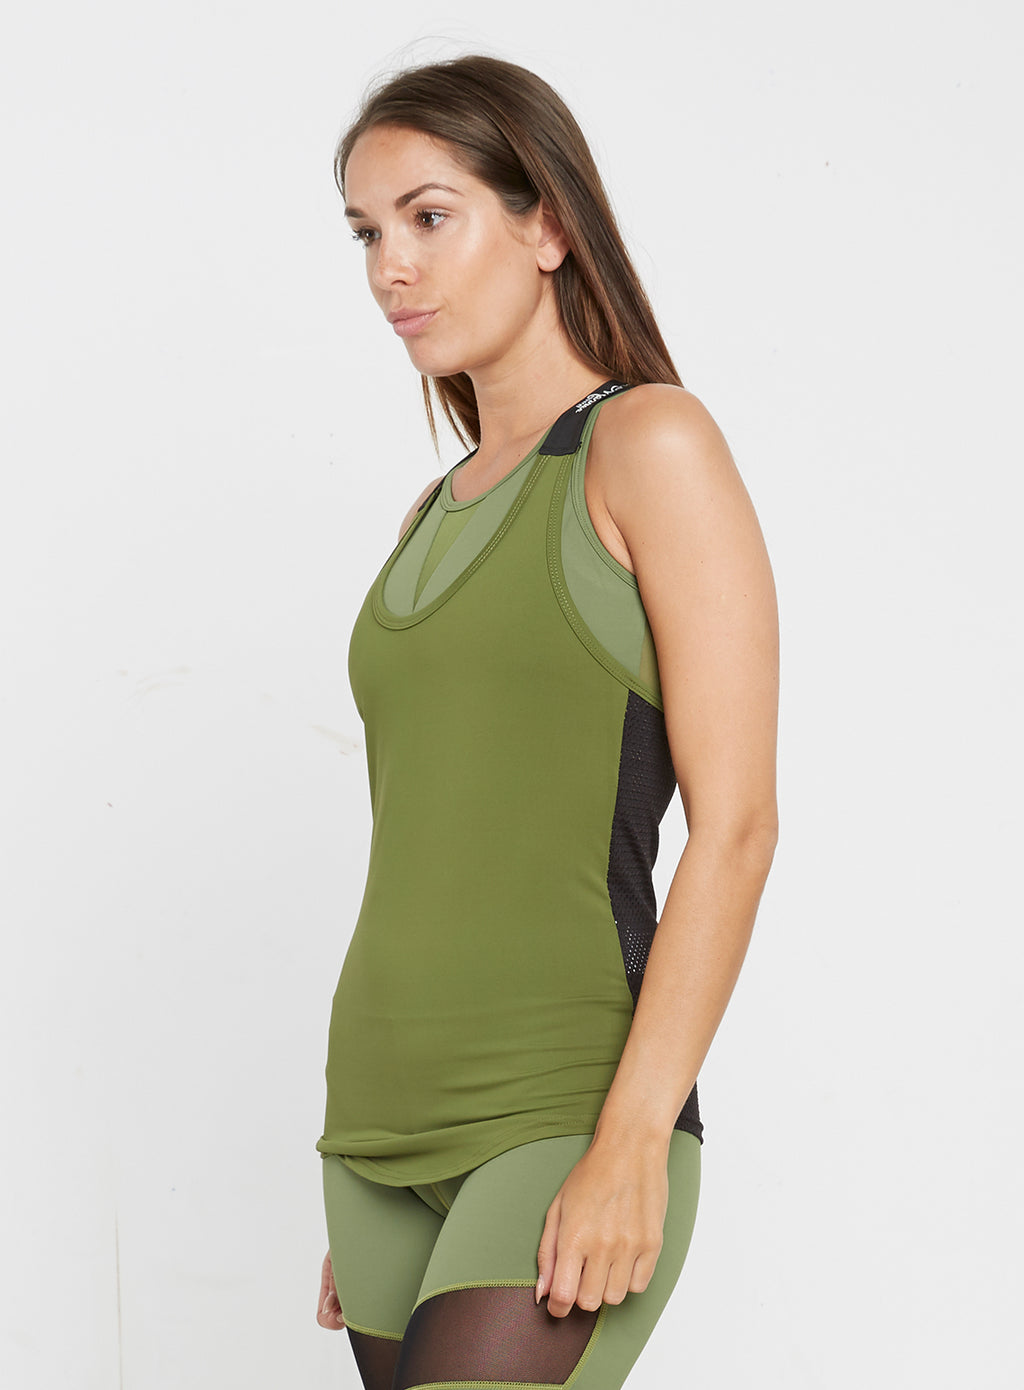 Gym Monkee - Ladies Black and Khaki Strap Top LEFT